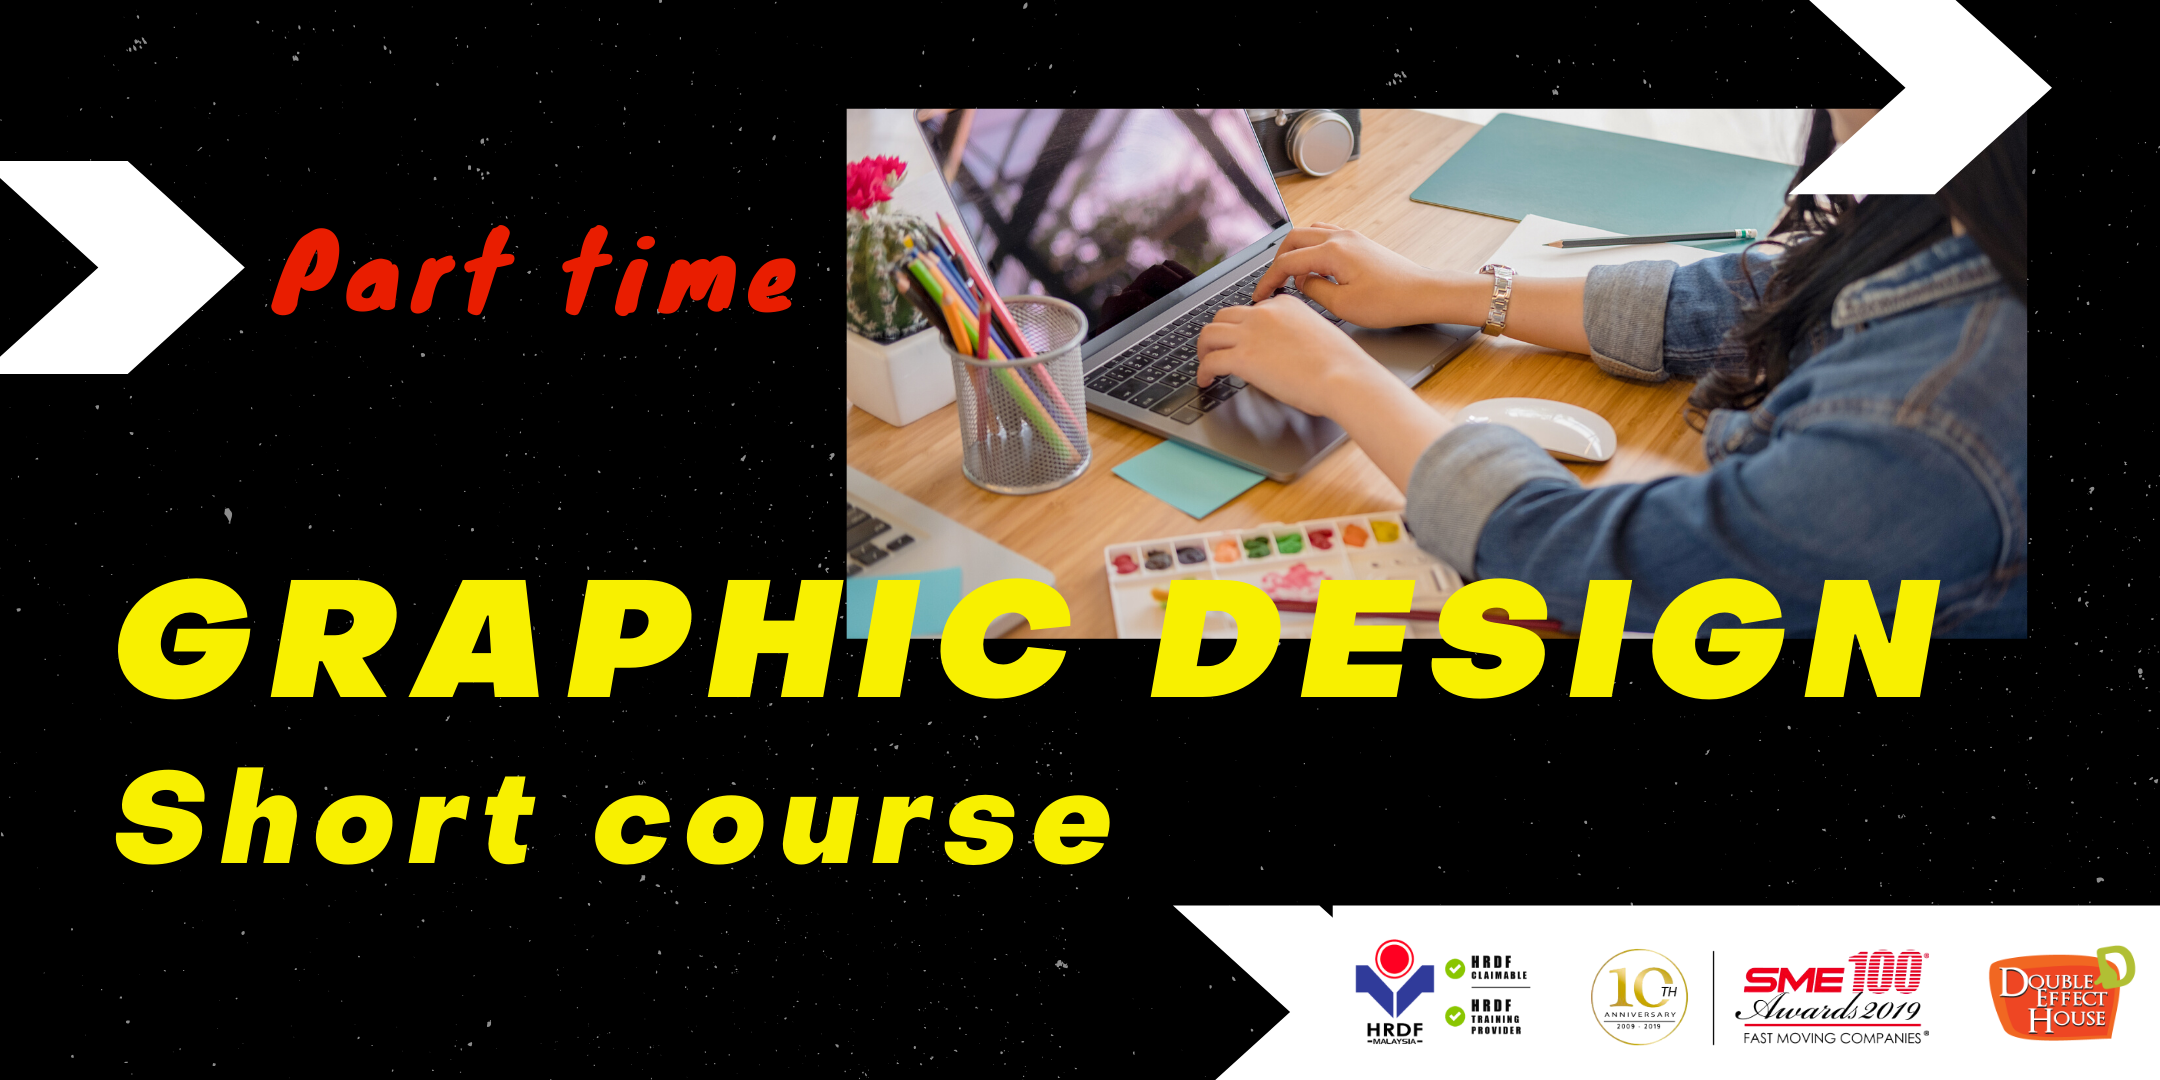 part time graphic design short course